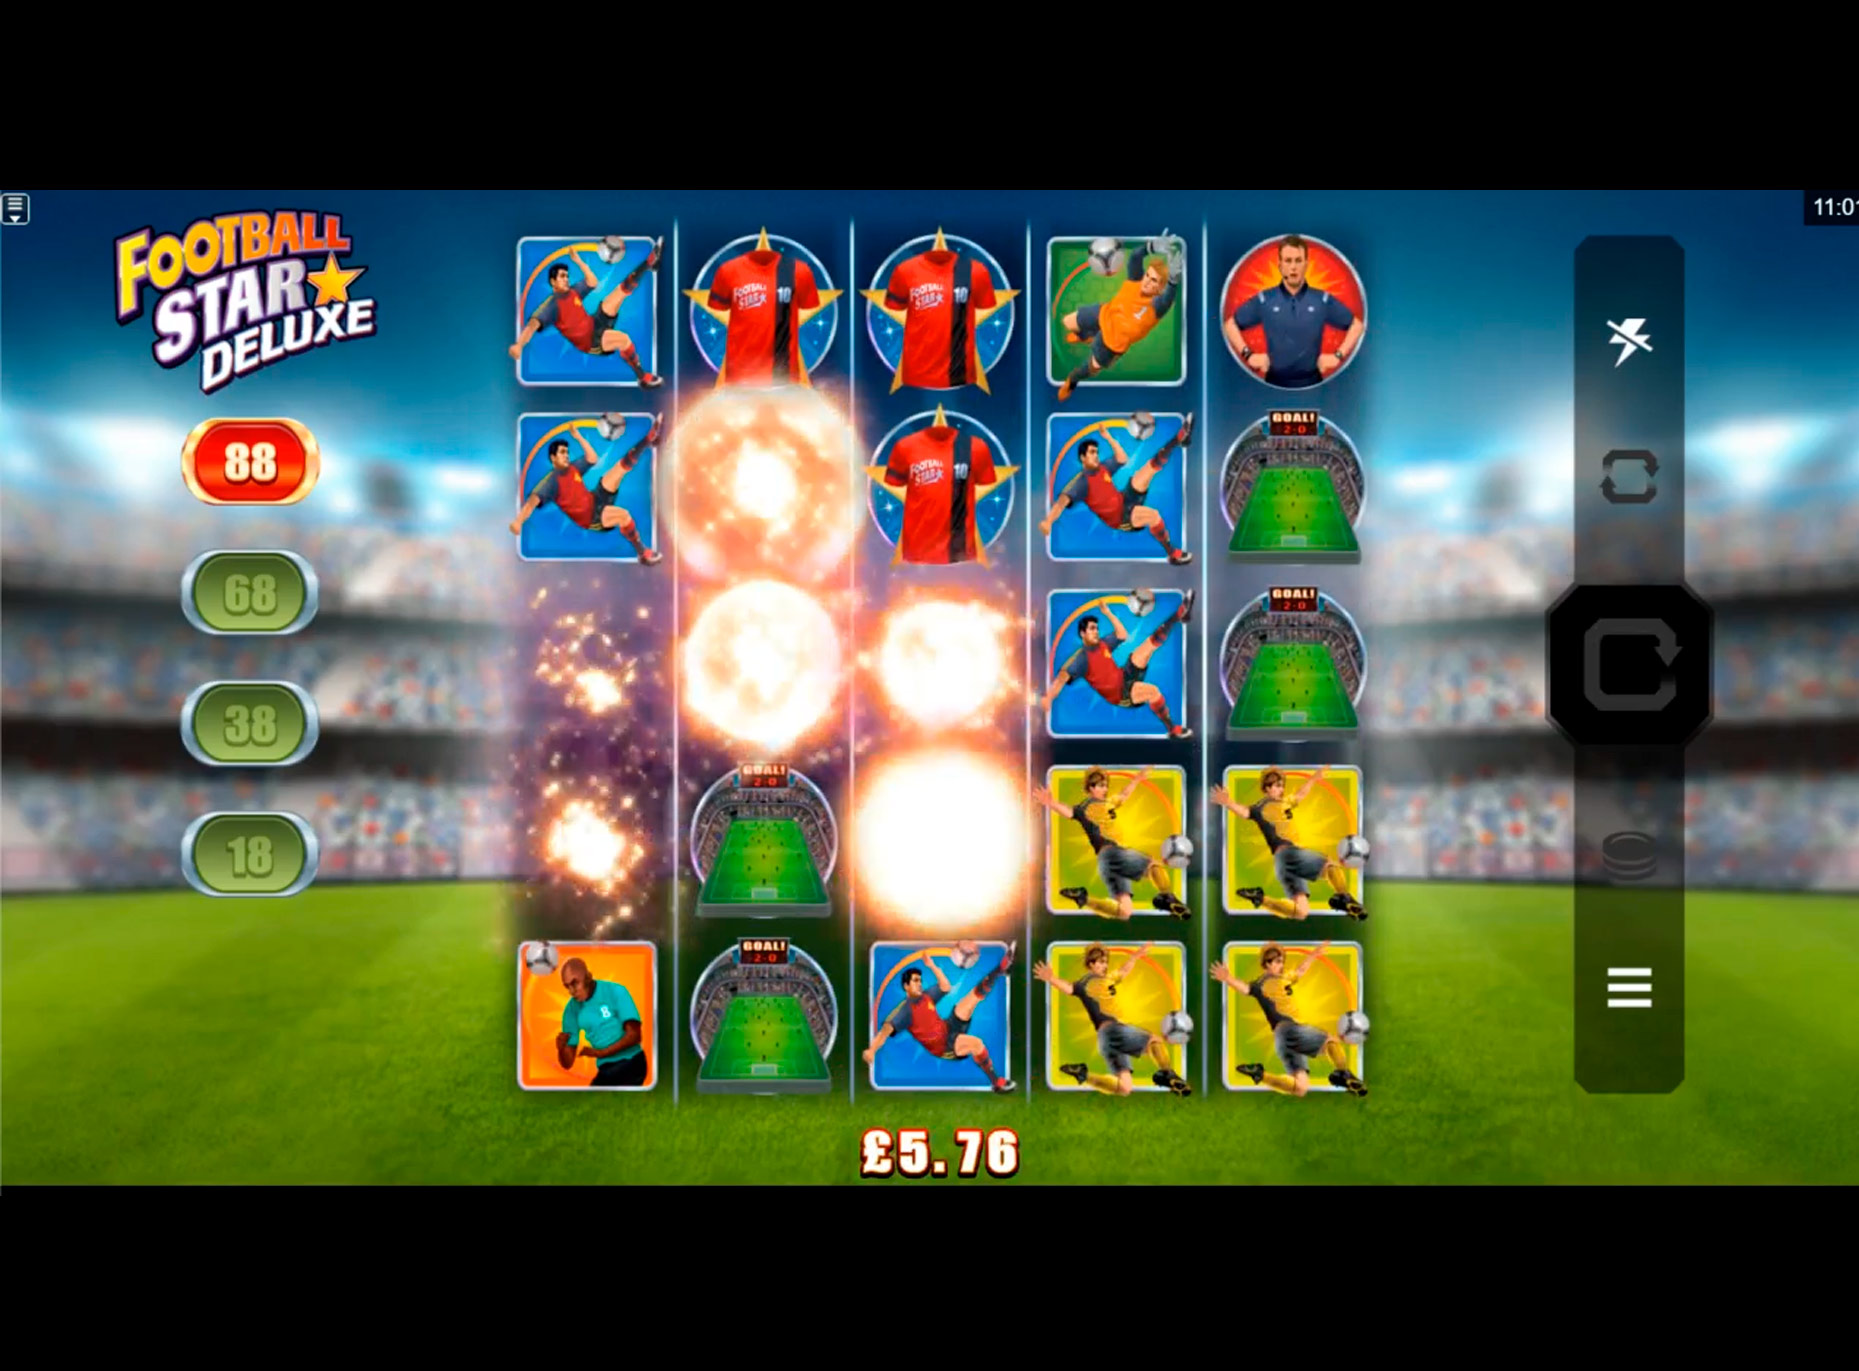 Slot Football Star Deluxe